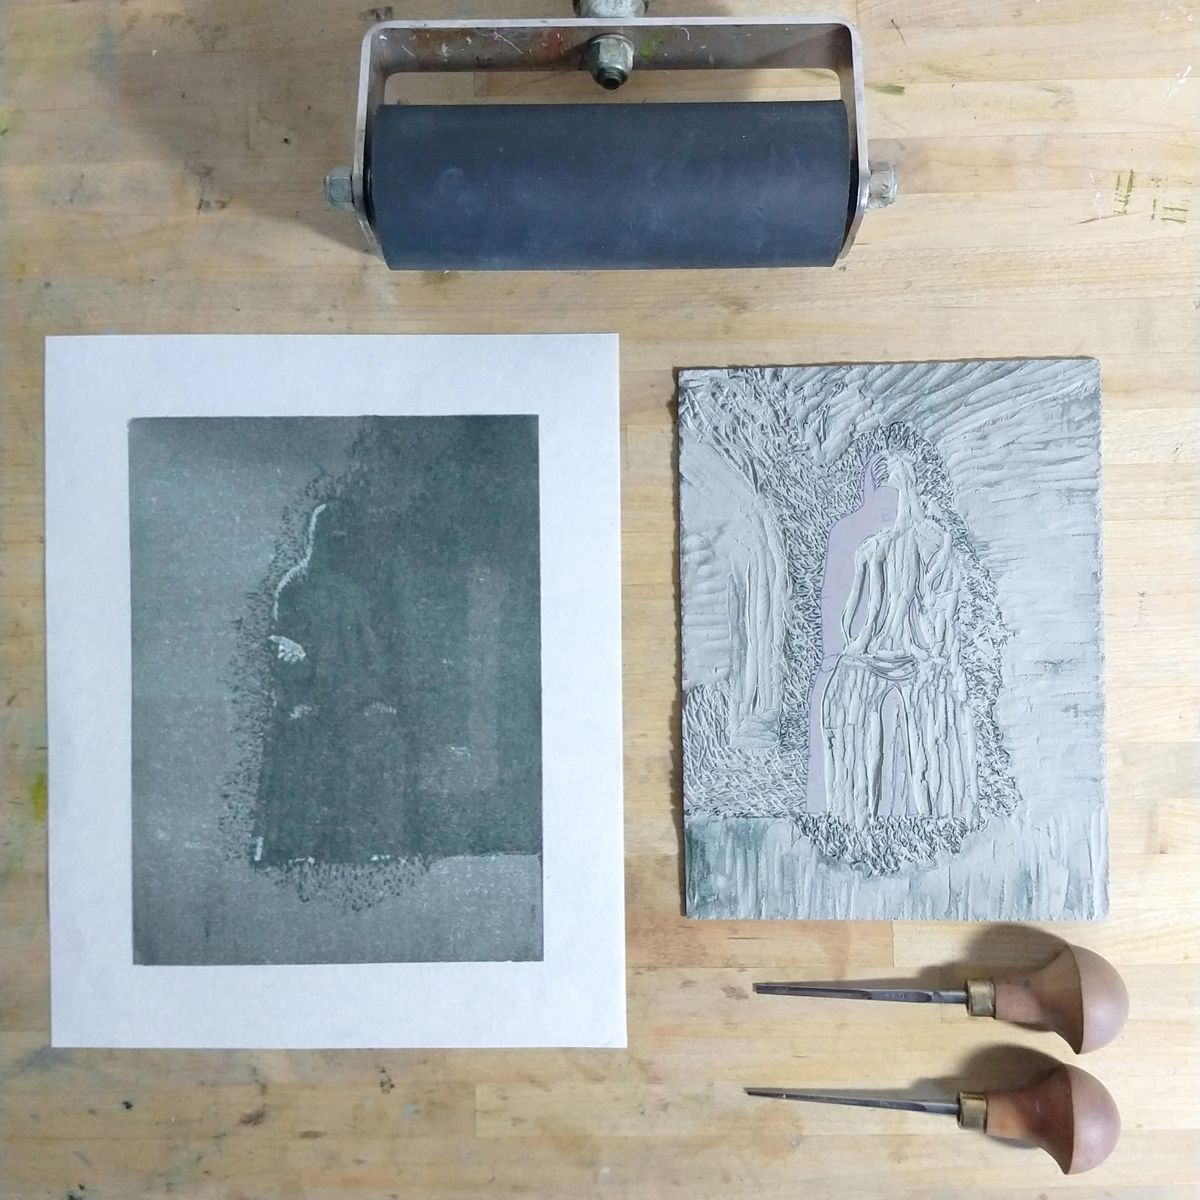 Melmoth print with plate and tools